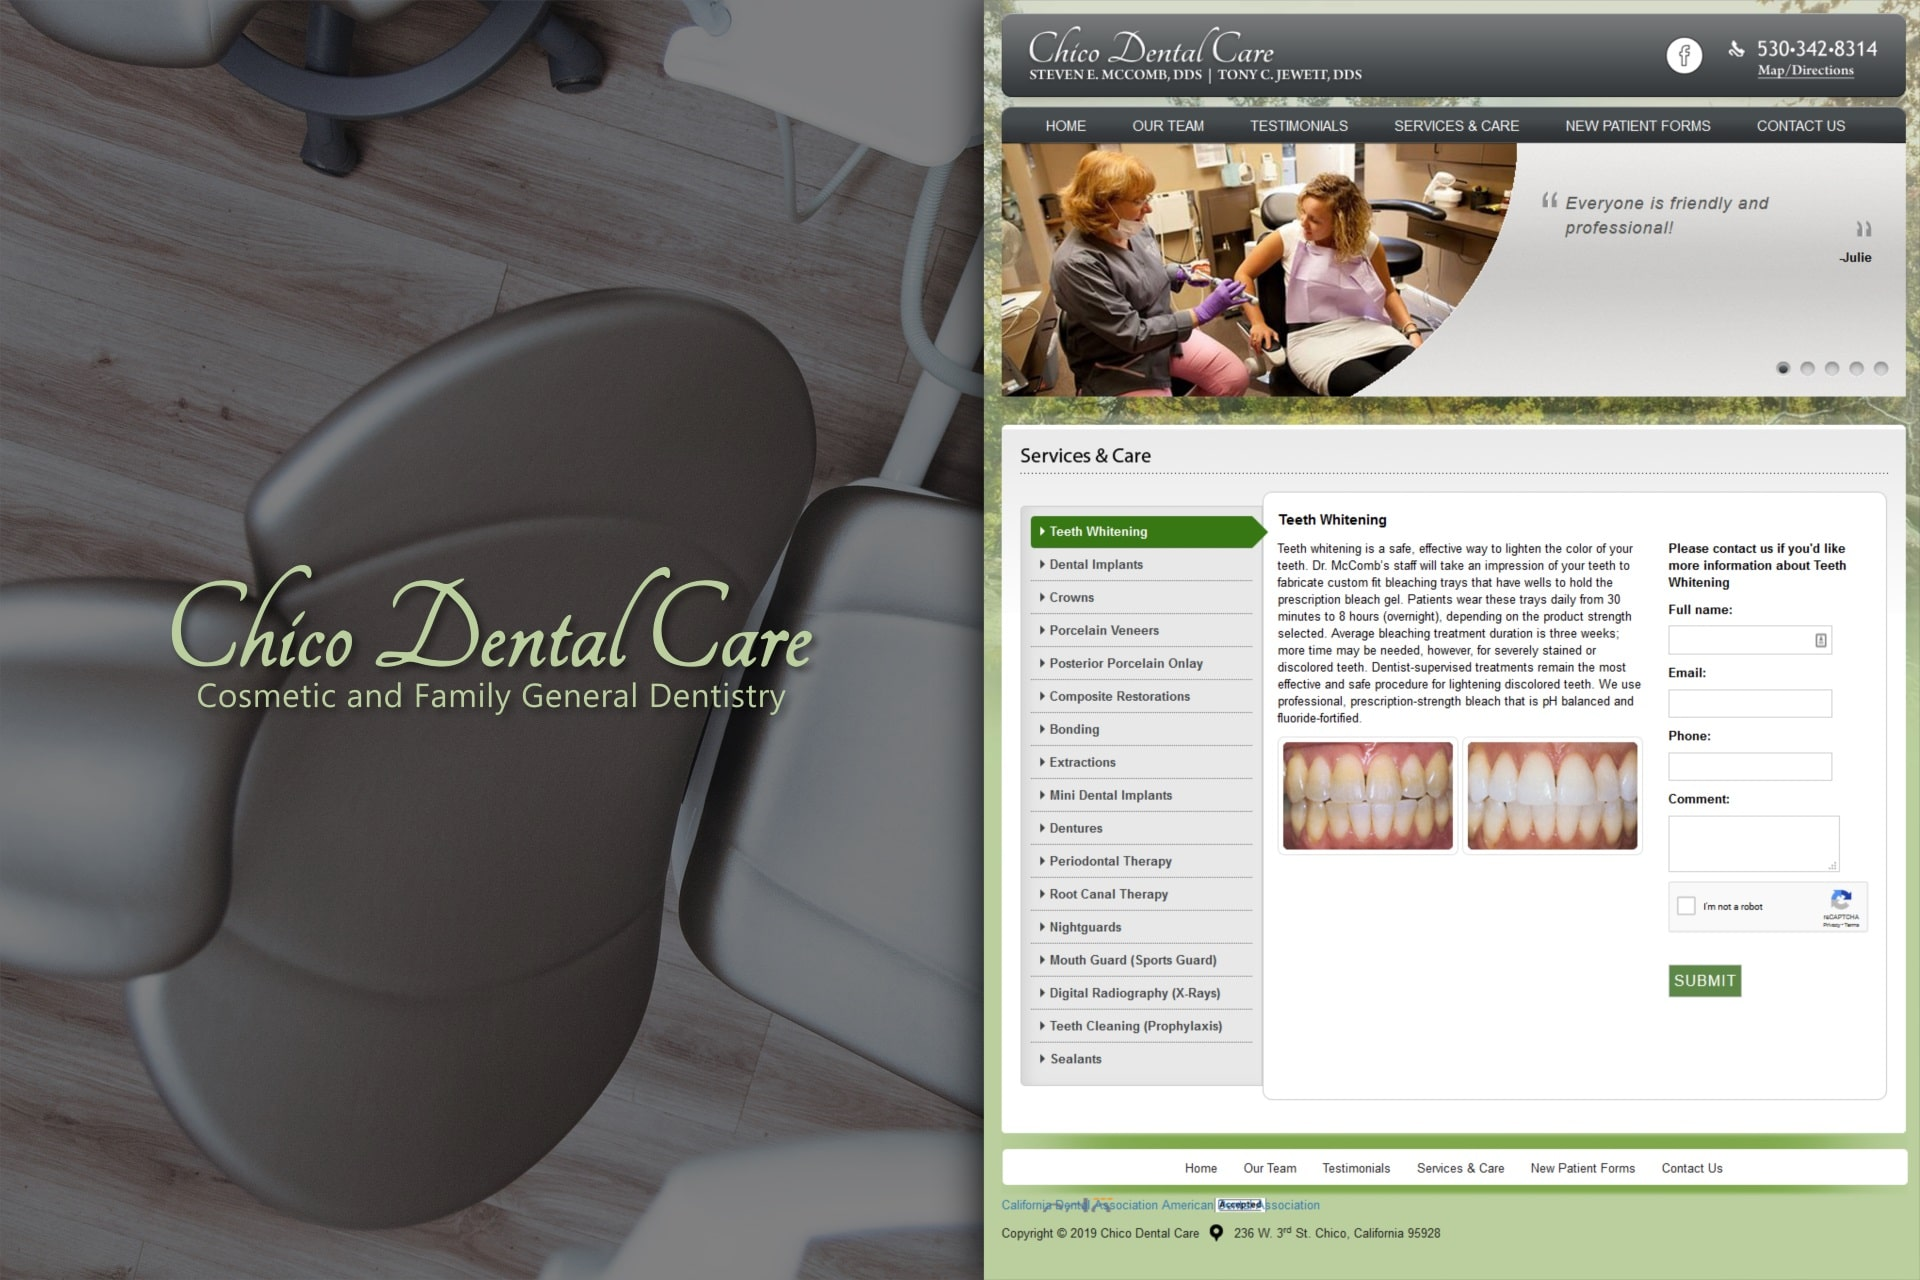 Chico Dental Care Services and Care.